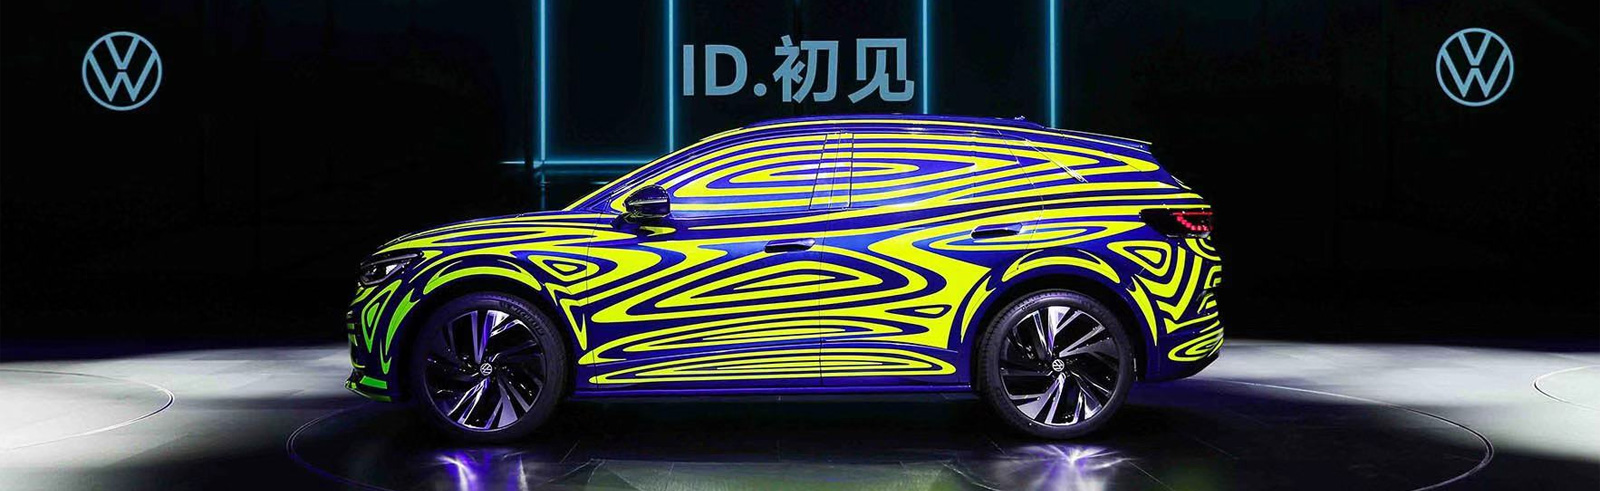 Pre-production of the Chinese VW ID.4 begins in the SAIC Volkswagen EV factory